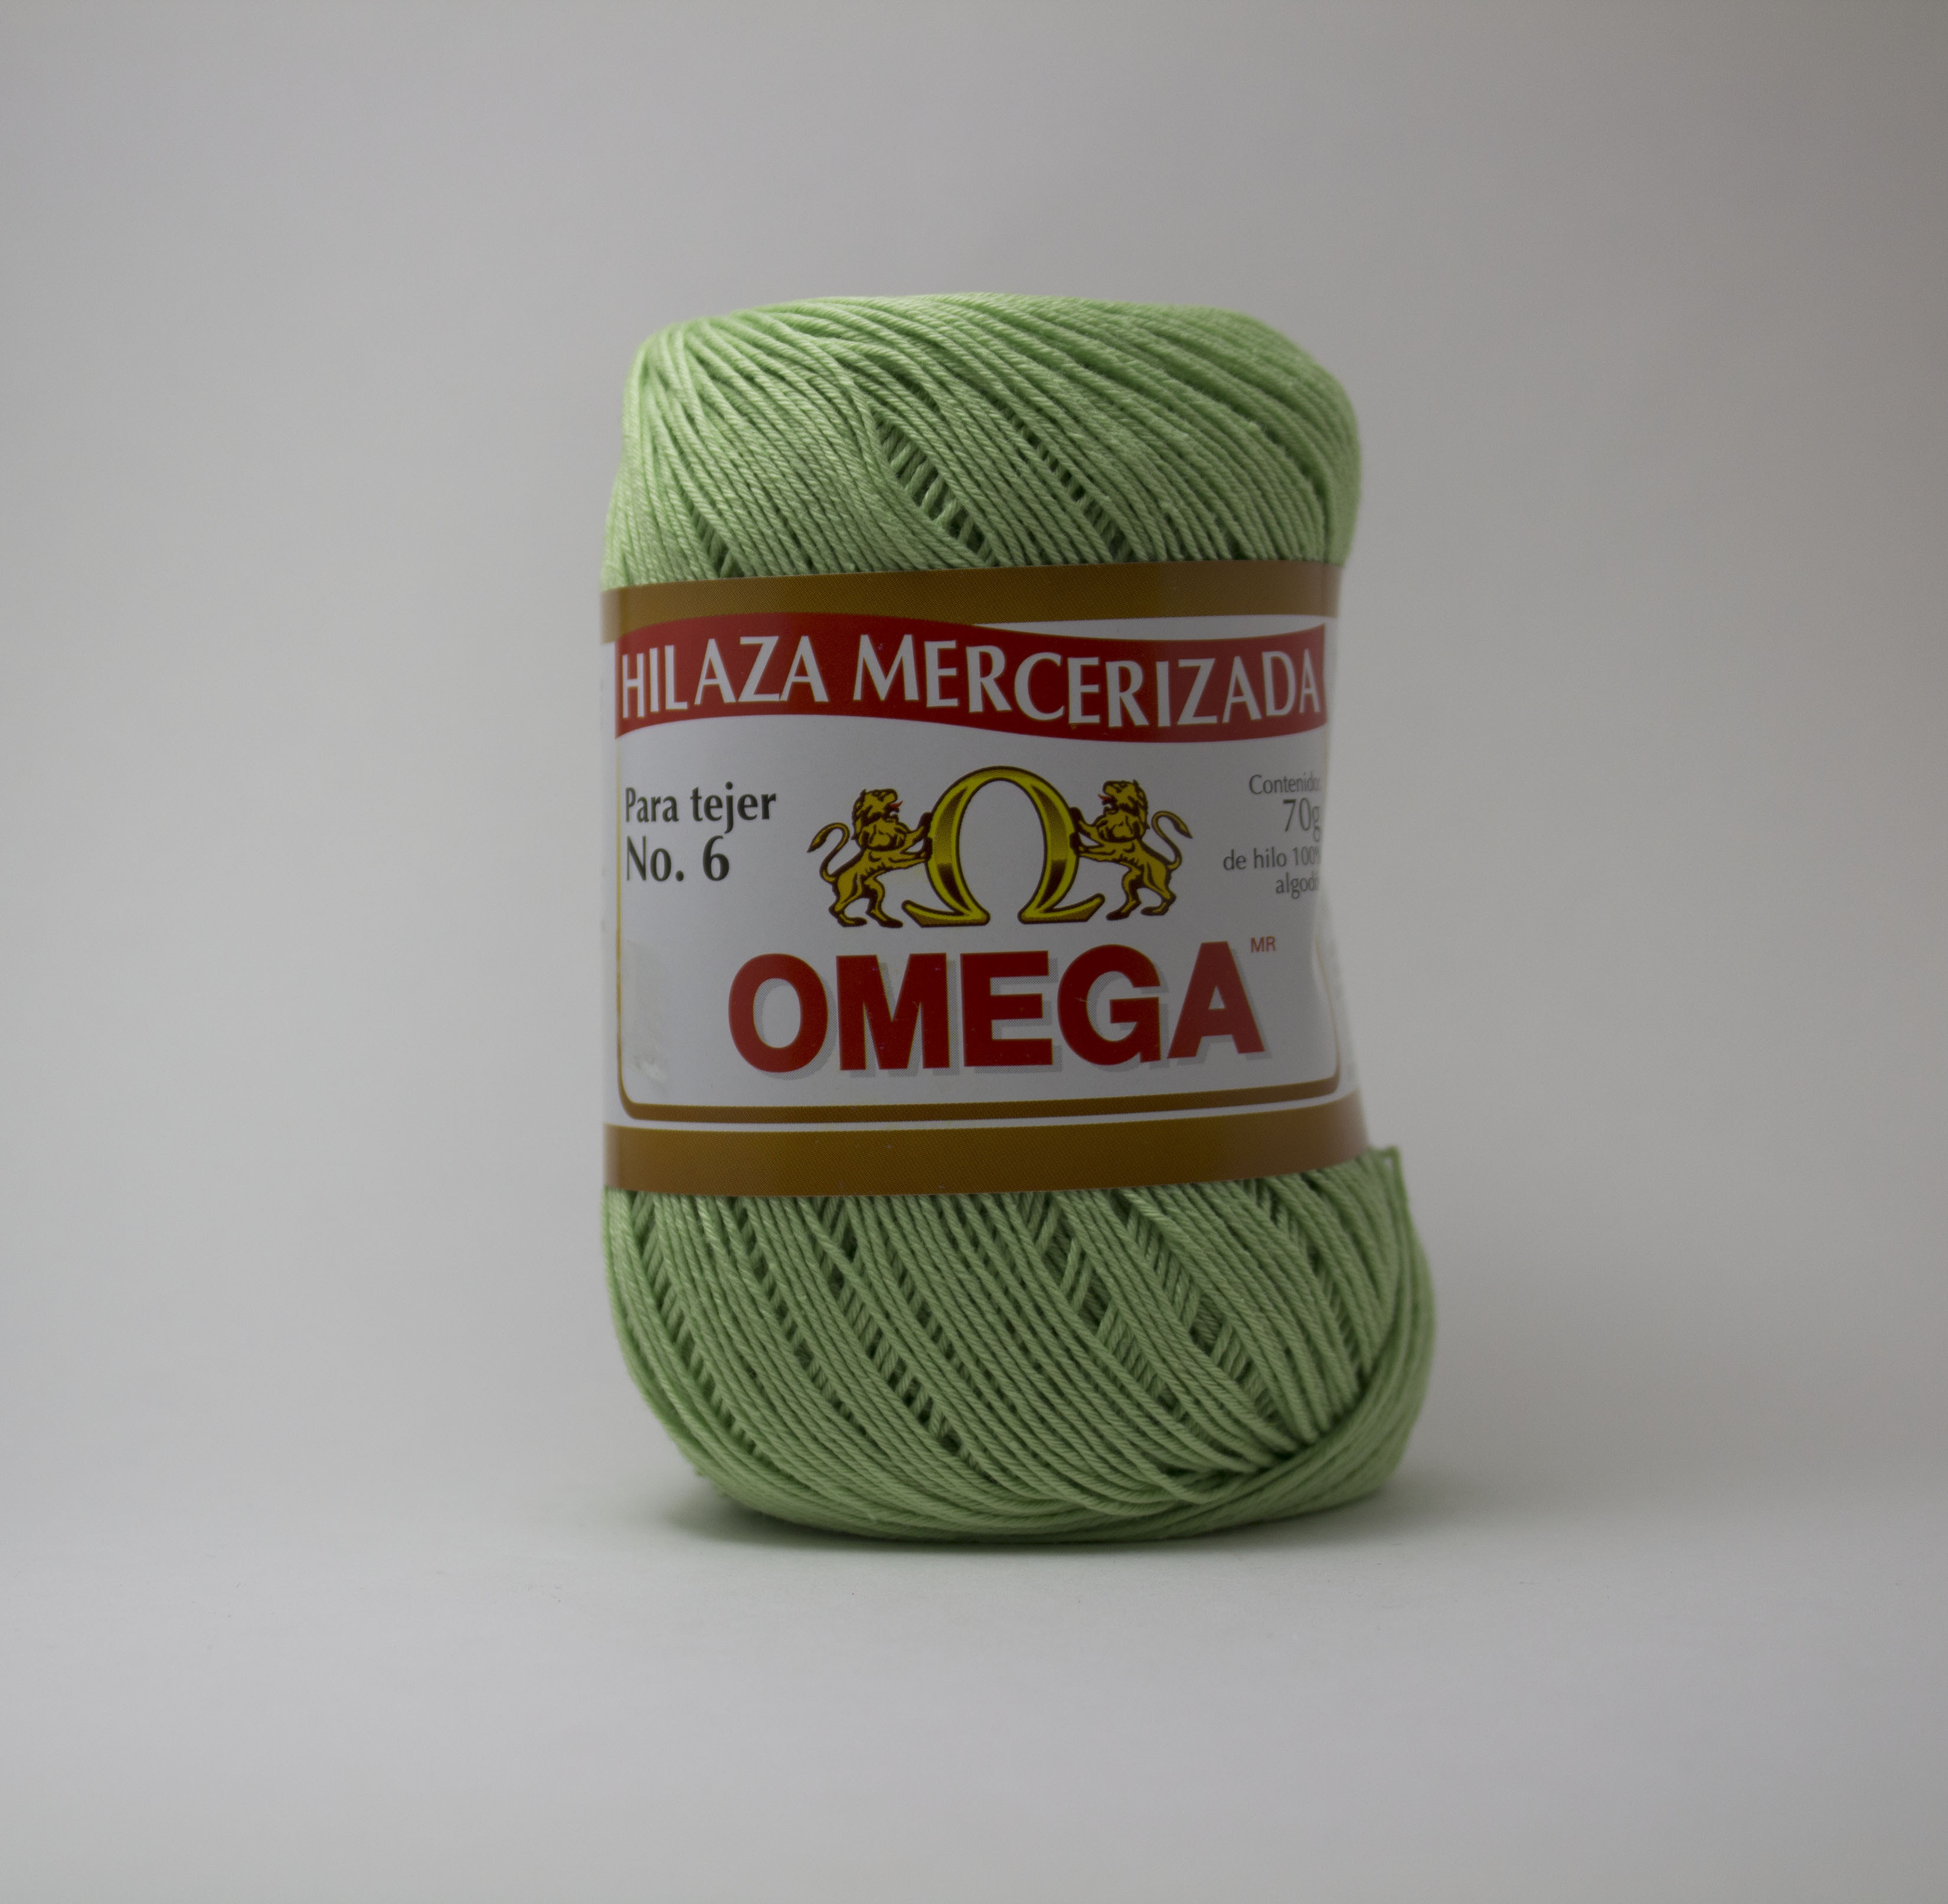 Omega Yarn Best Of Hilaza Omega Yarns 6 Archives Of Awesome 49 Pictures Omega Yarn